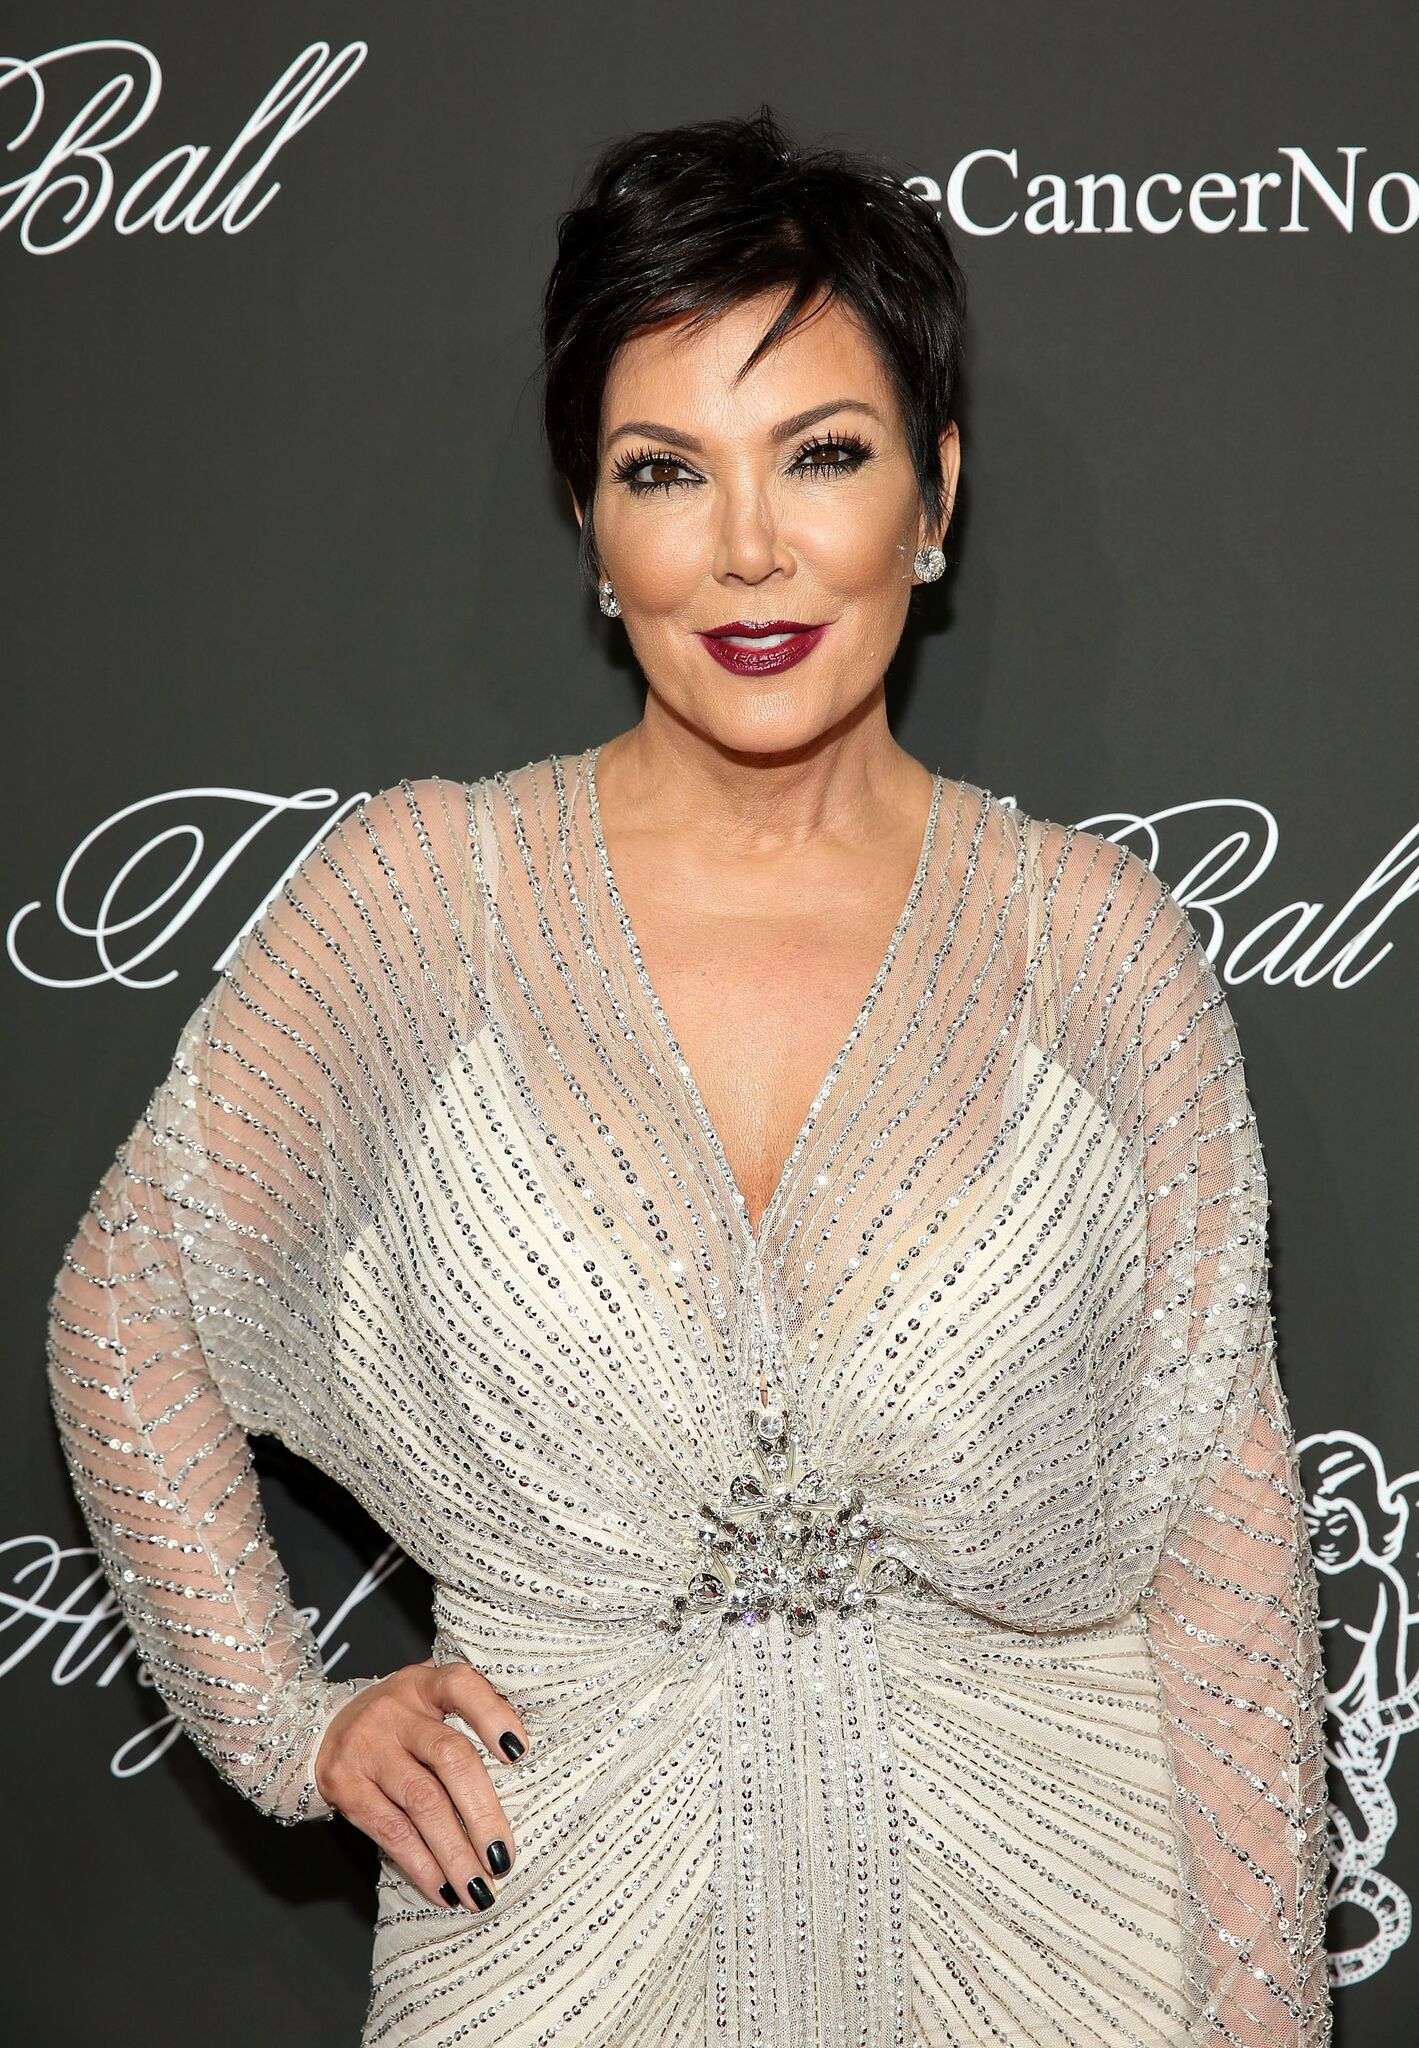 Kris Jenner attends Angel Ball 2014 at Cipriani Wall Street | Getty Images